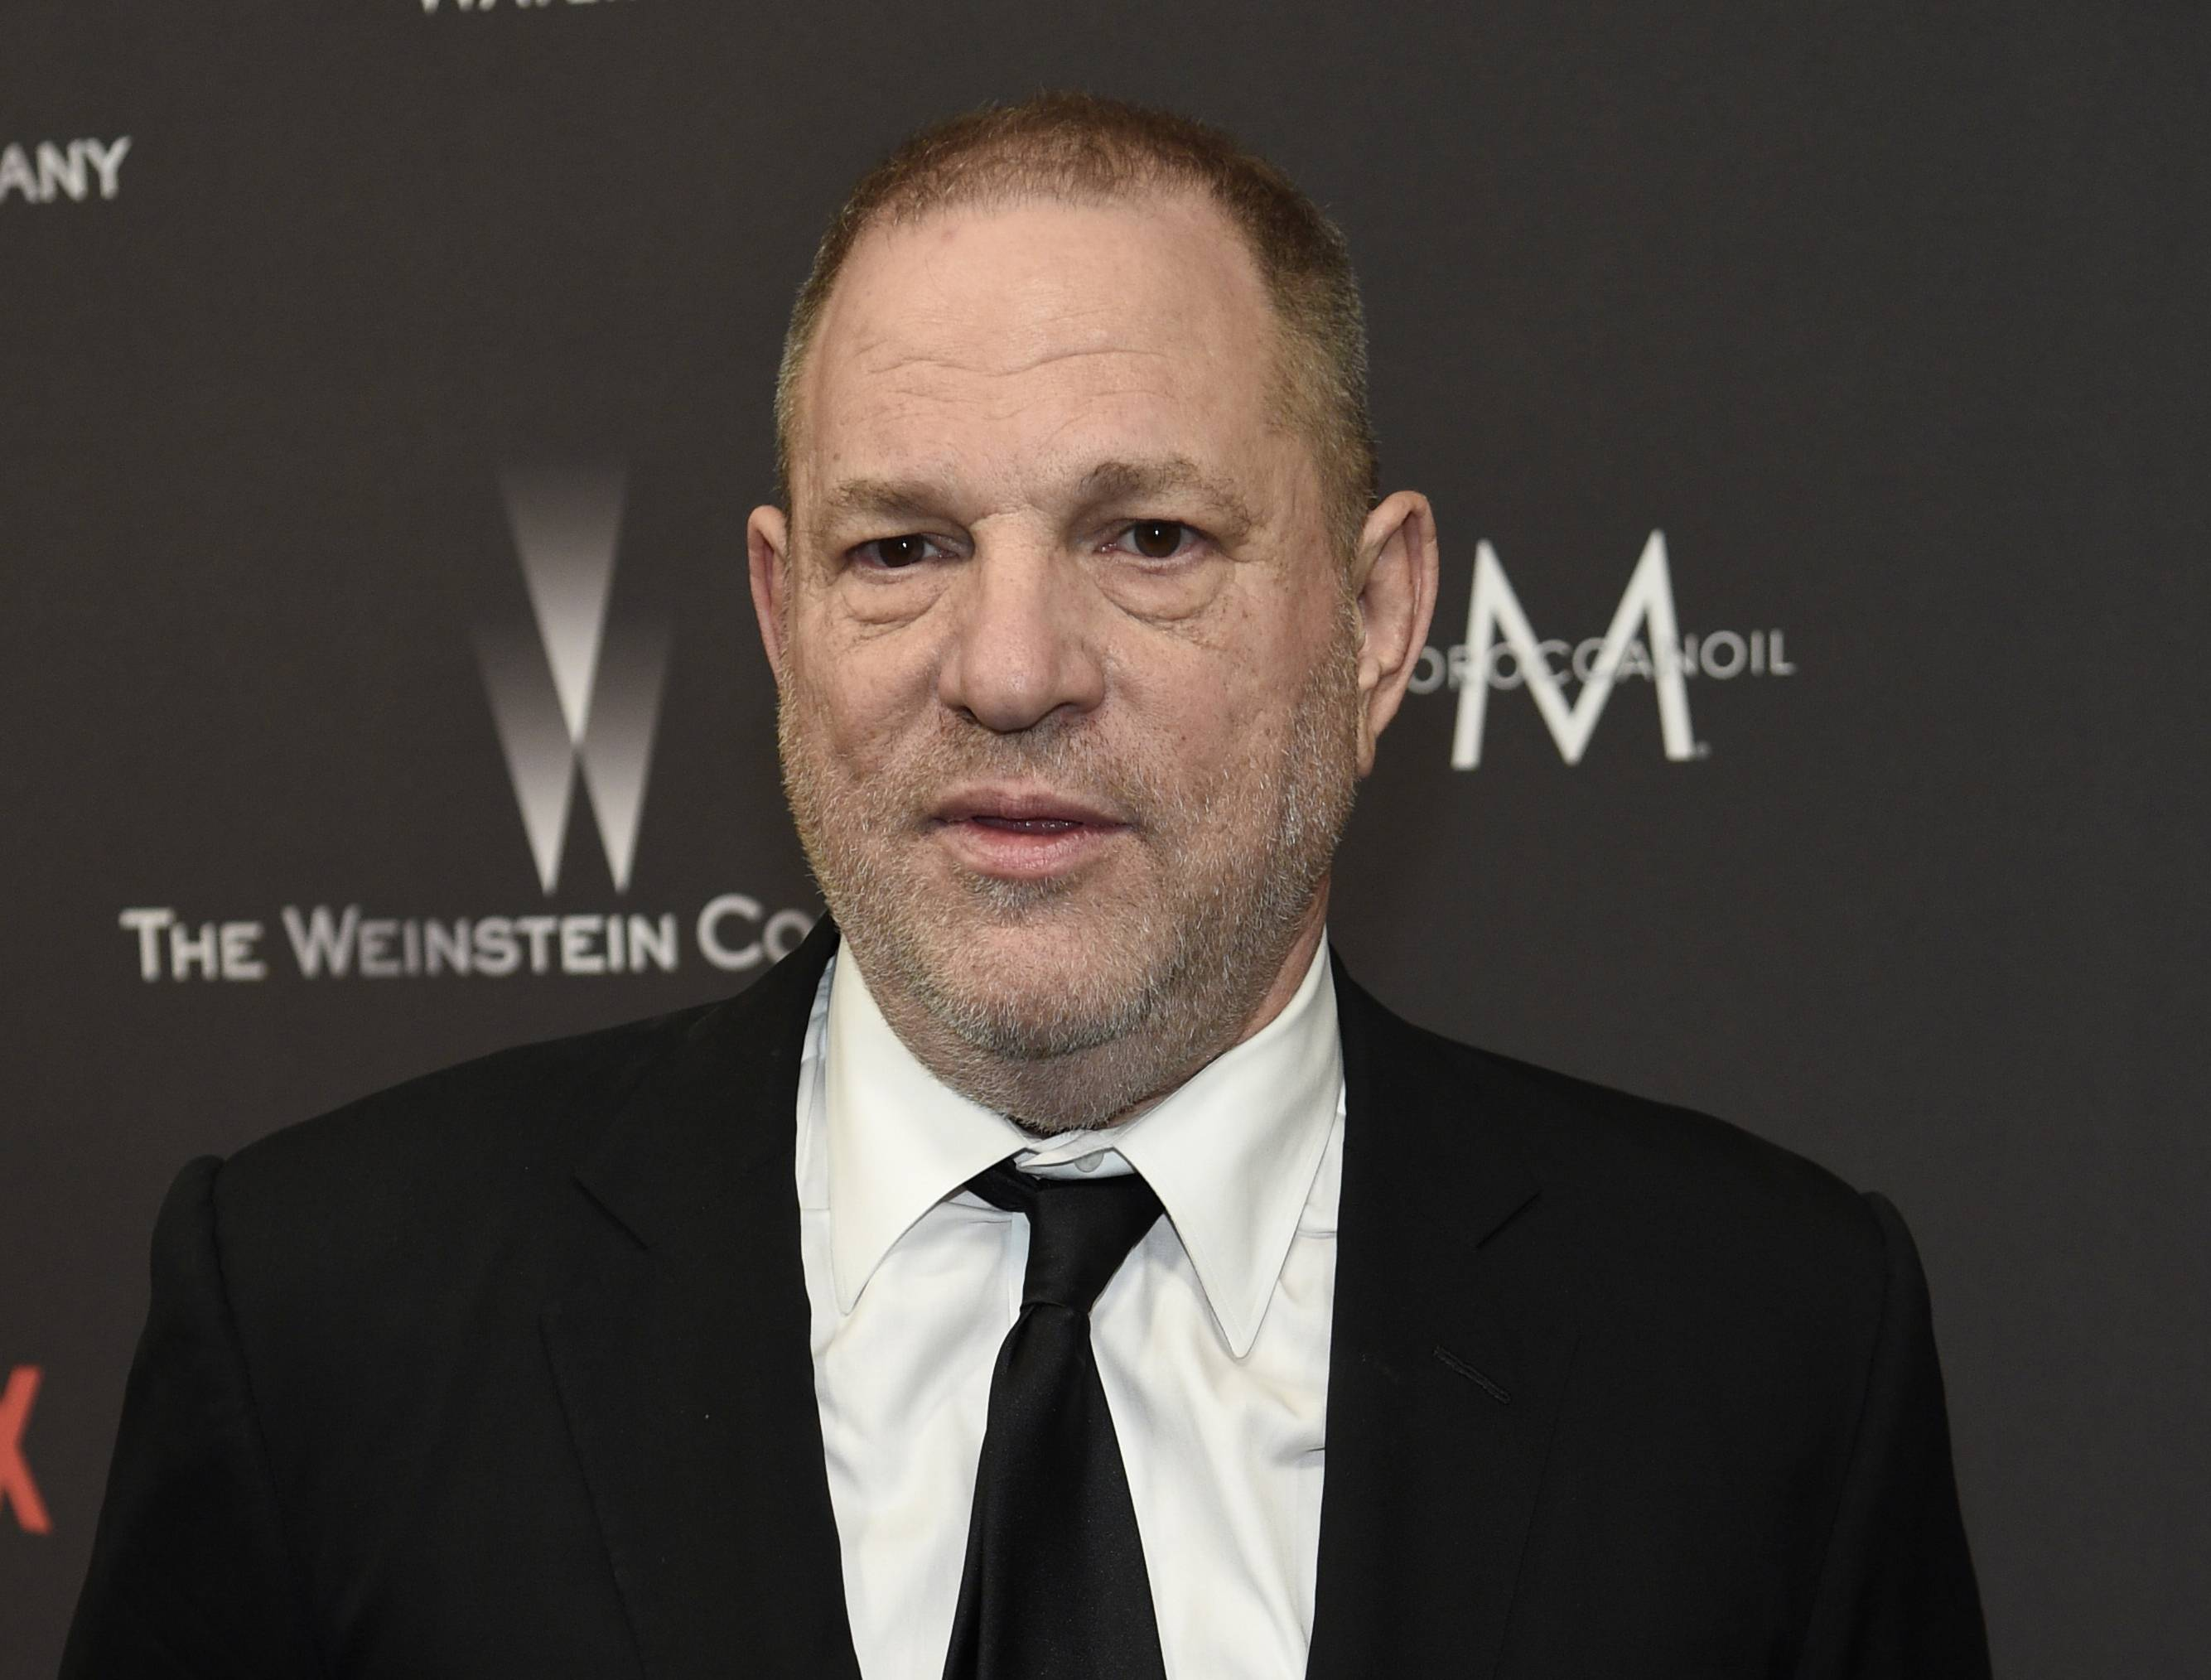 Anxiety among human resources managers is about more than whether there could be a Harvey Weinstein on the payroll. Amid the rush of allegations, human resources managers are grappling with a changing social media, technology and cultural environment that makes it more challenging than ever to know how to respond.